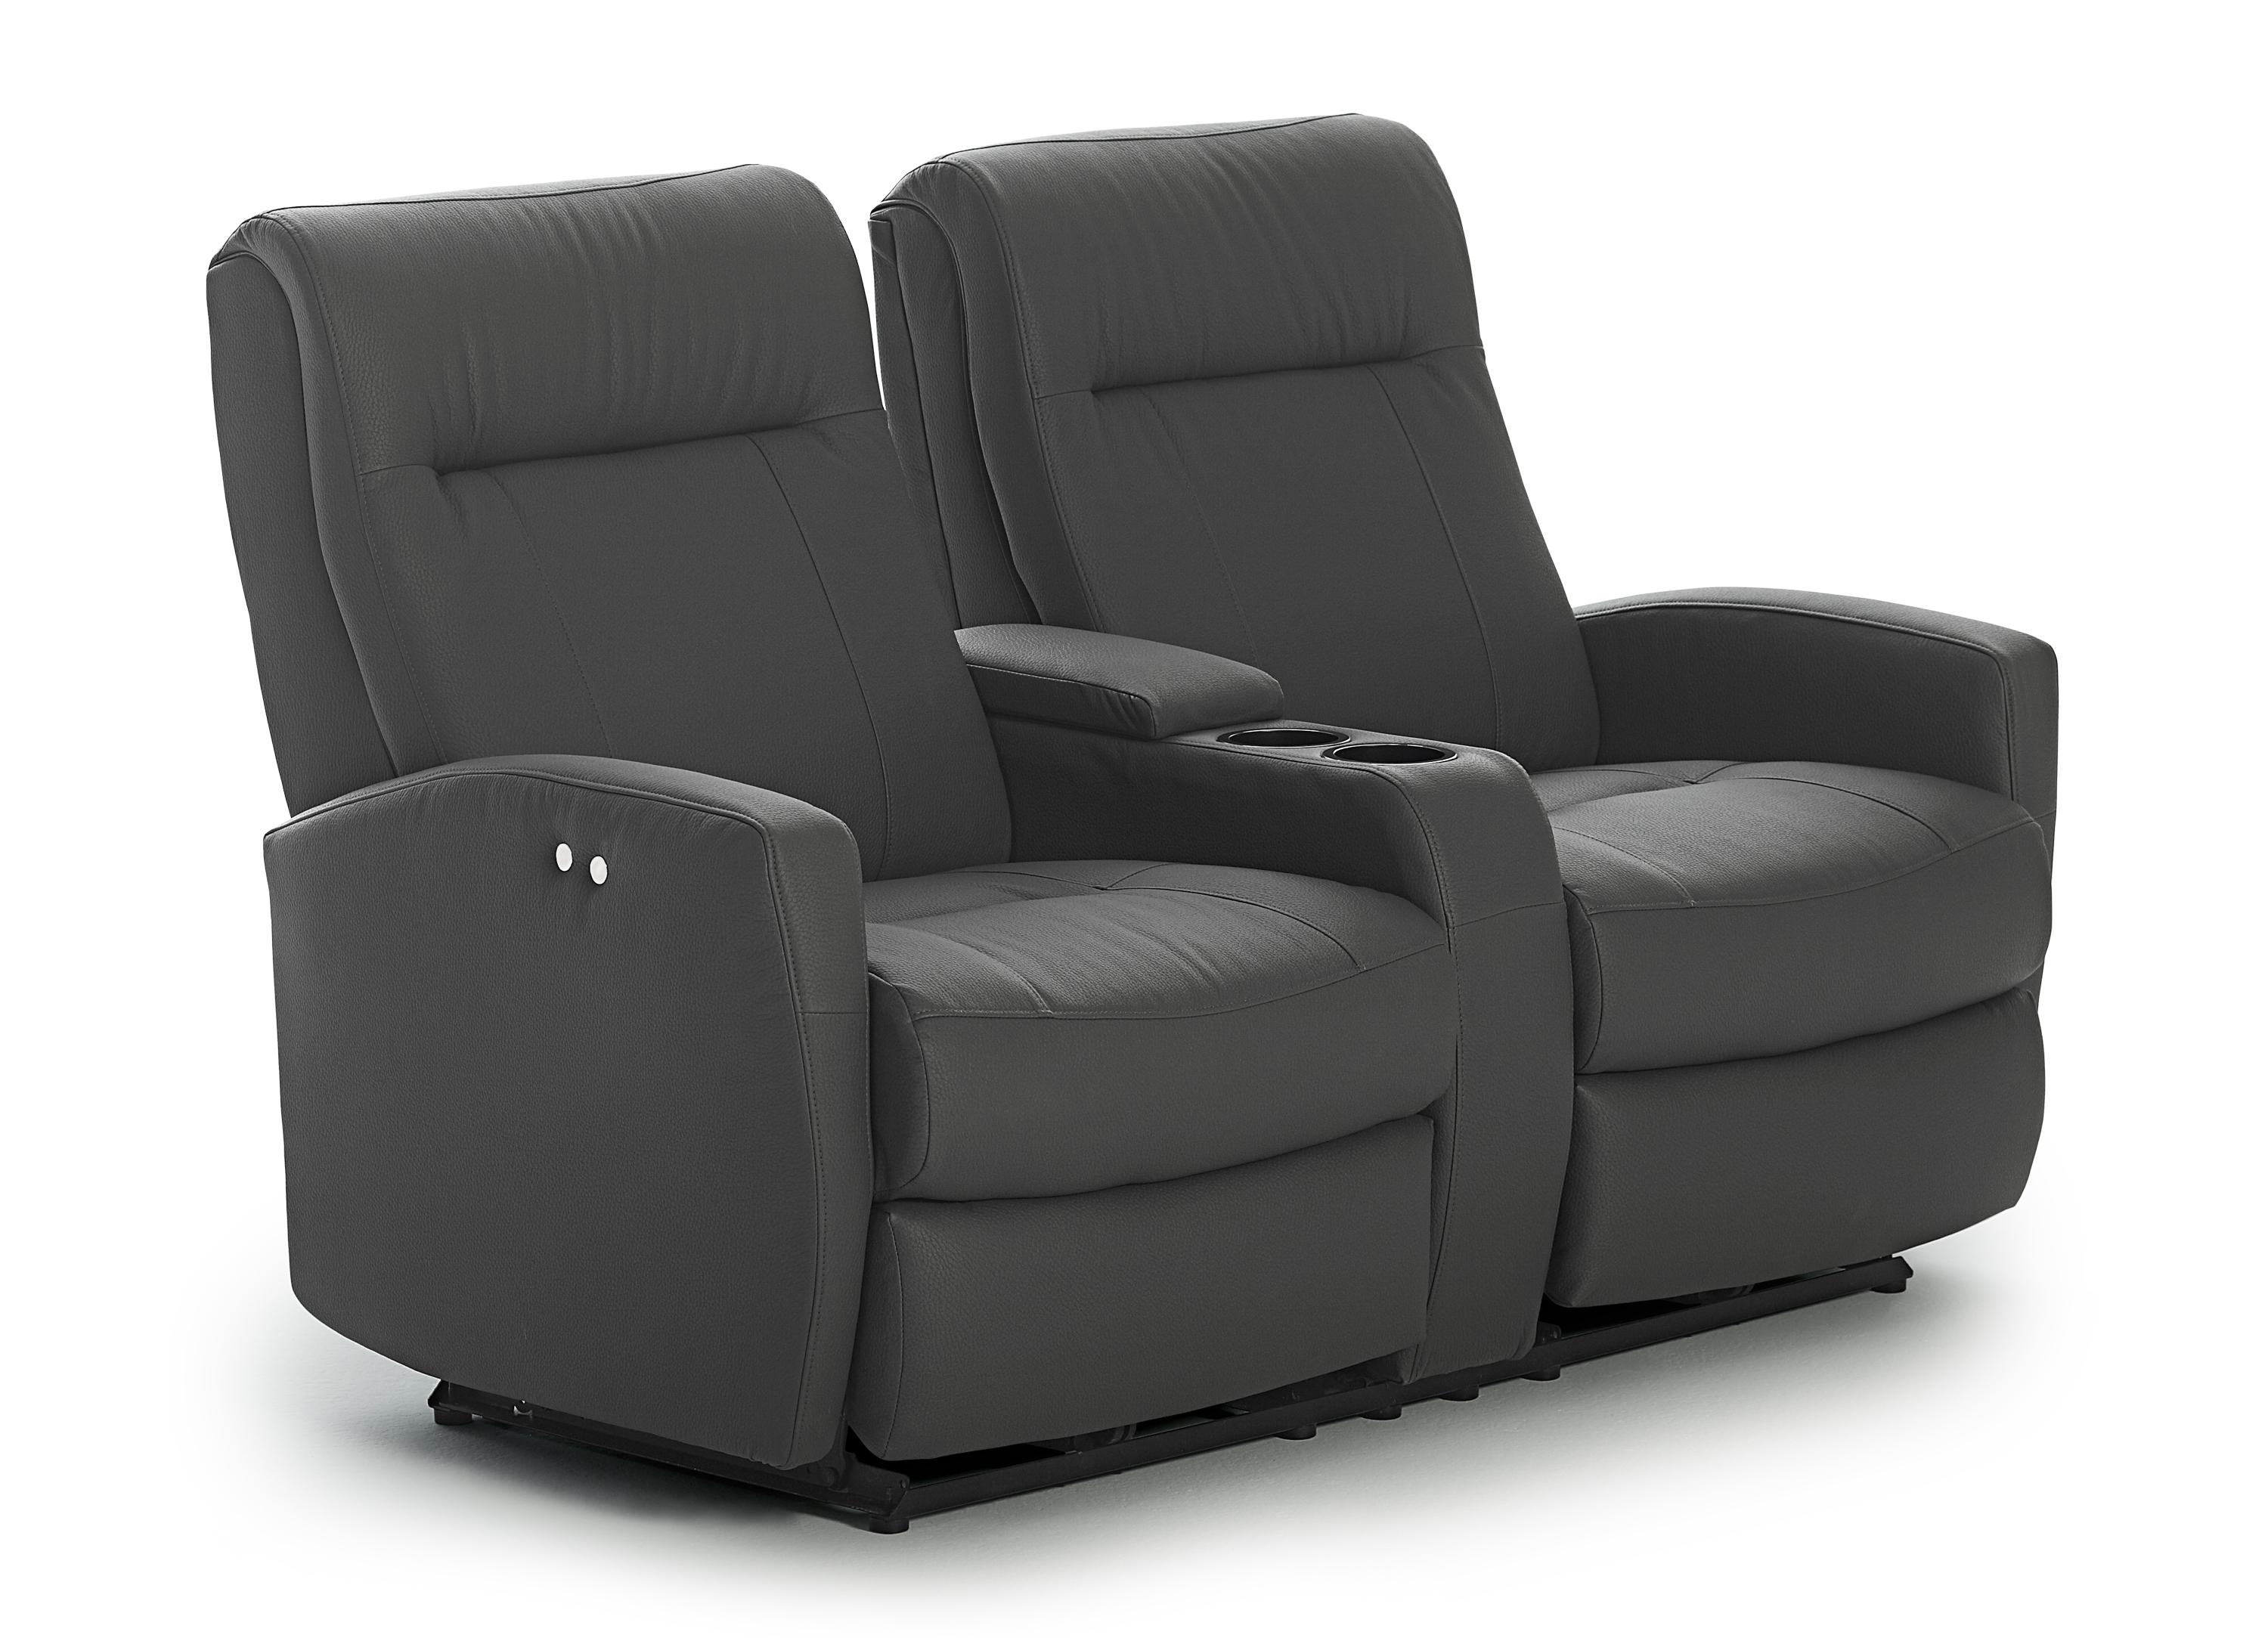 Contemporary Rocking Reclining Loveseat With Drink Console And Charging Port By Best Home